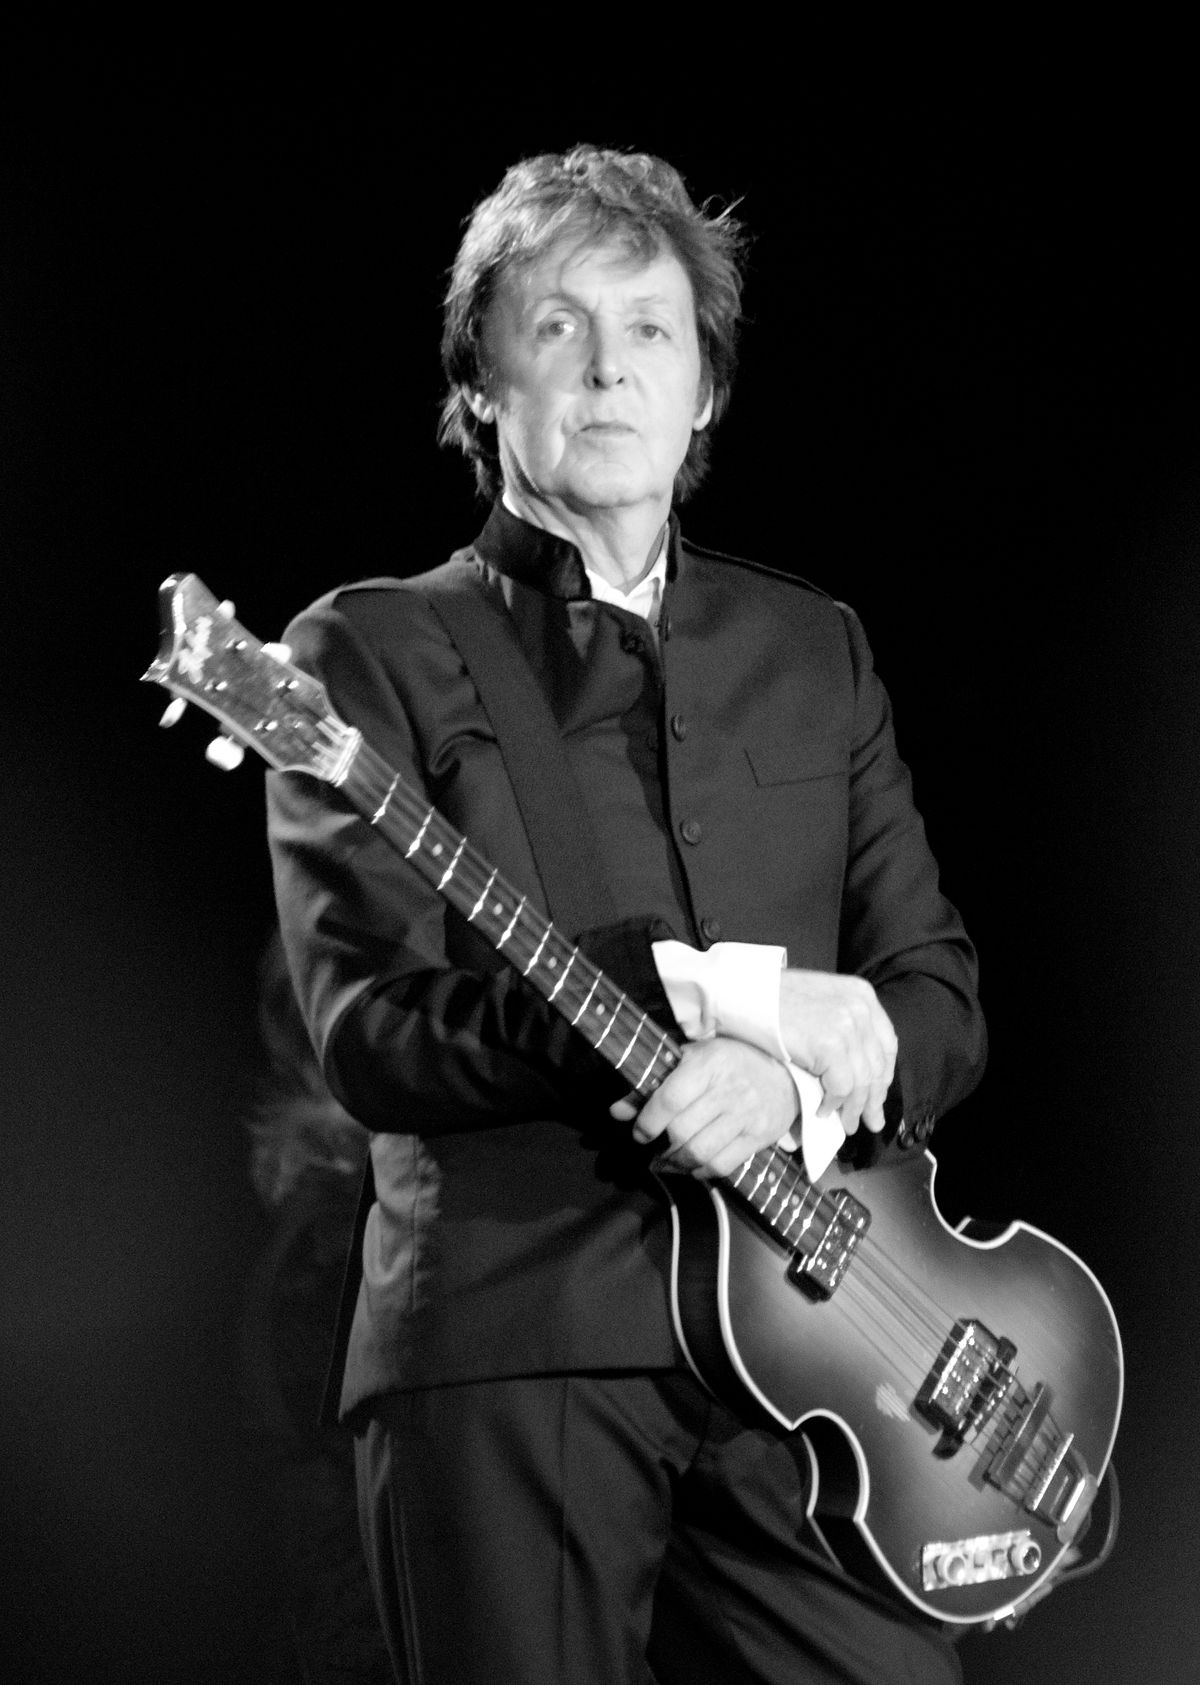 "paul mccartney ""the love we make"" recoge también los ensayos de mccartney y su banda para el concierto así como la decisión de incluir en el repertorio la canción ""freedom."